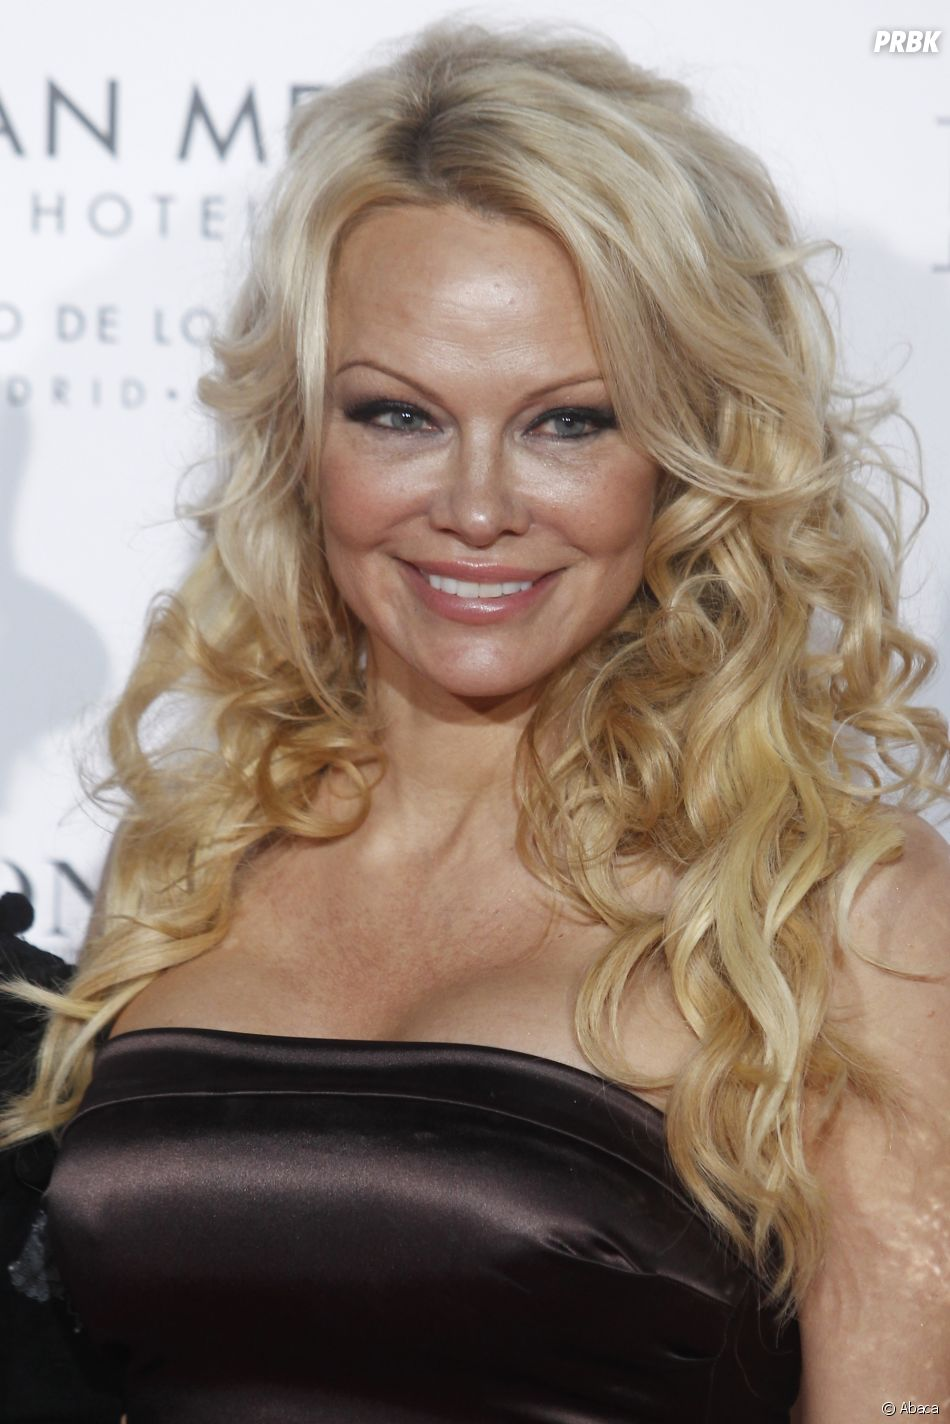 Pamela Anderson unmanageable in Dance with the Stars 9? The huge rant of Maxime Dereymez